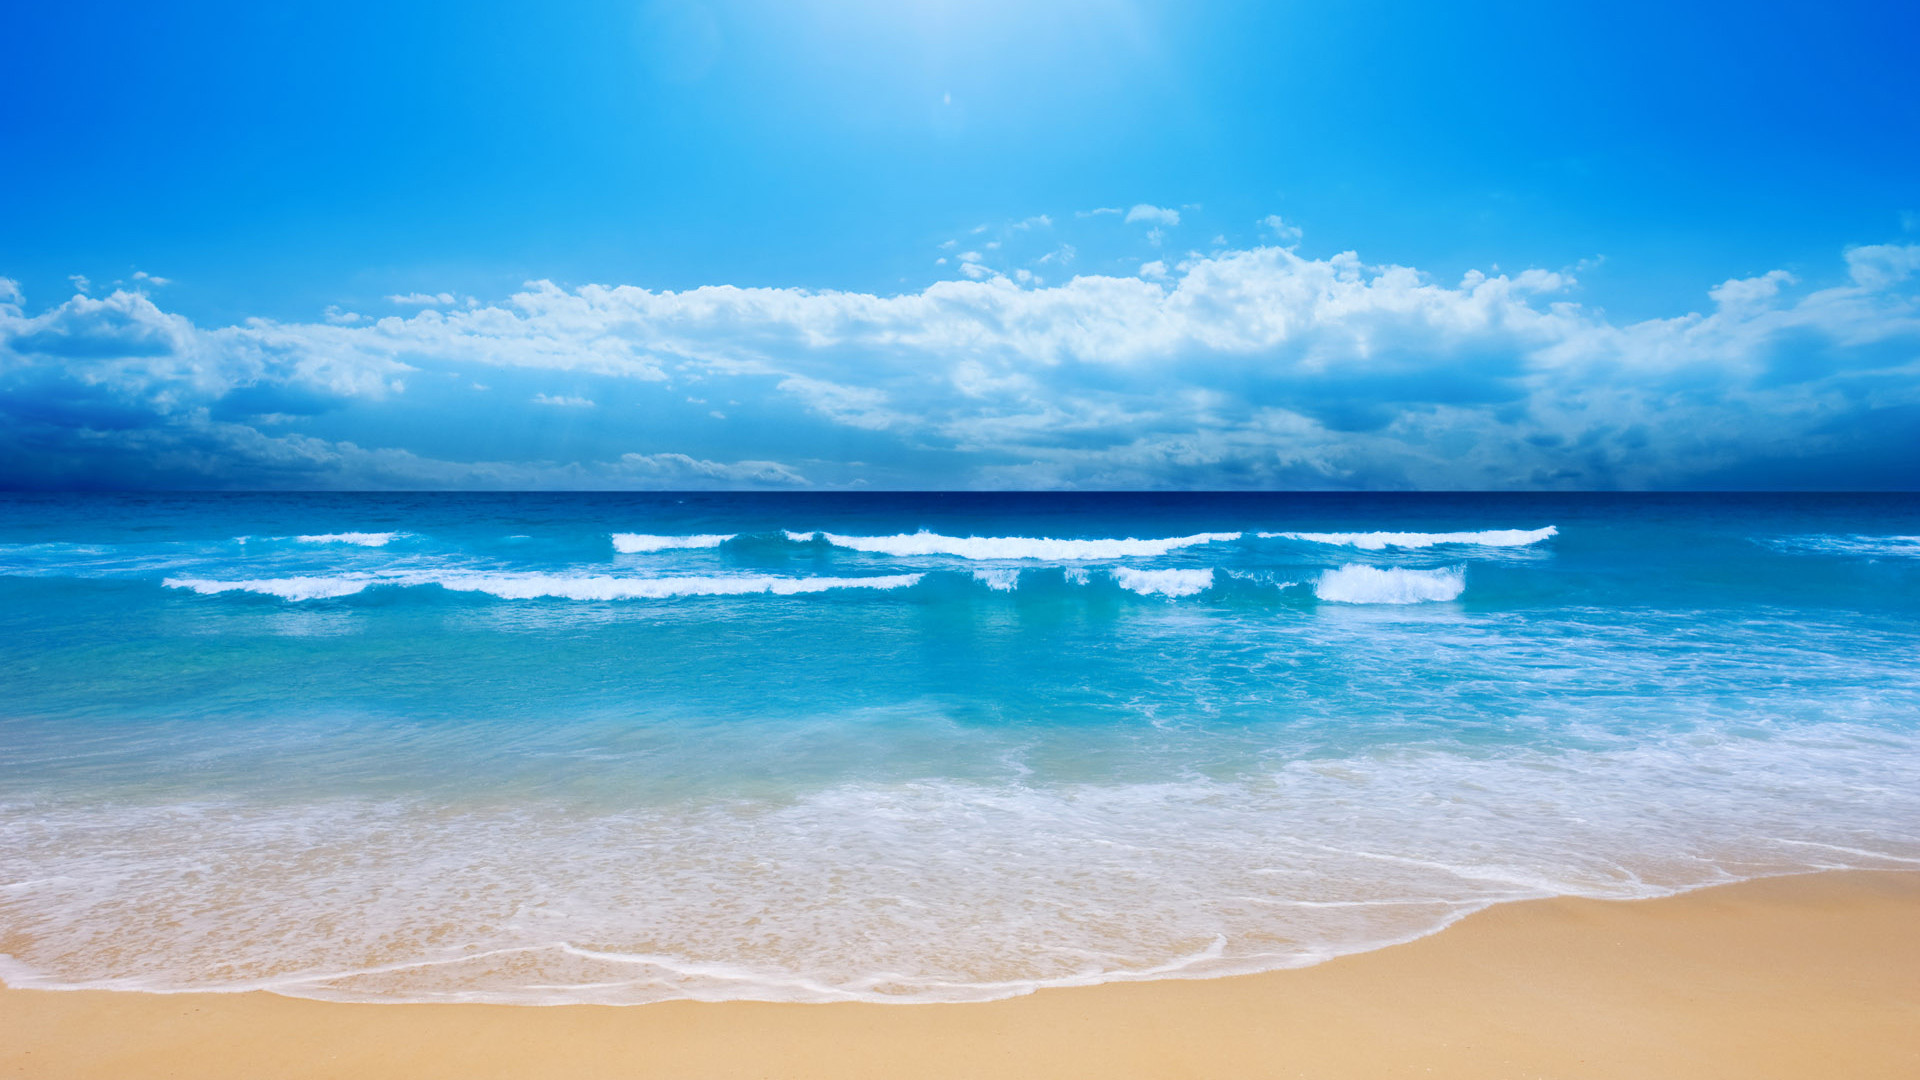 Res: 1920x1080, Small Sea Wave HDTV 1080p